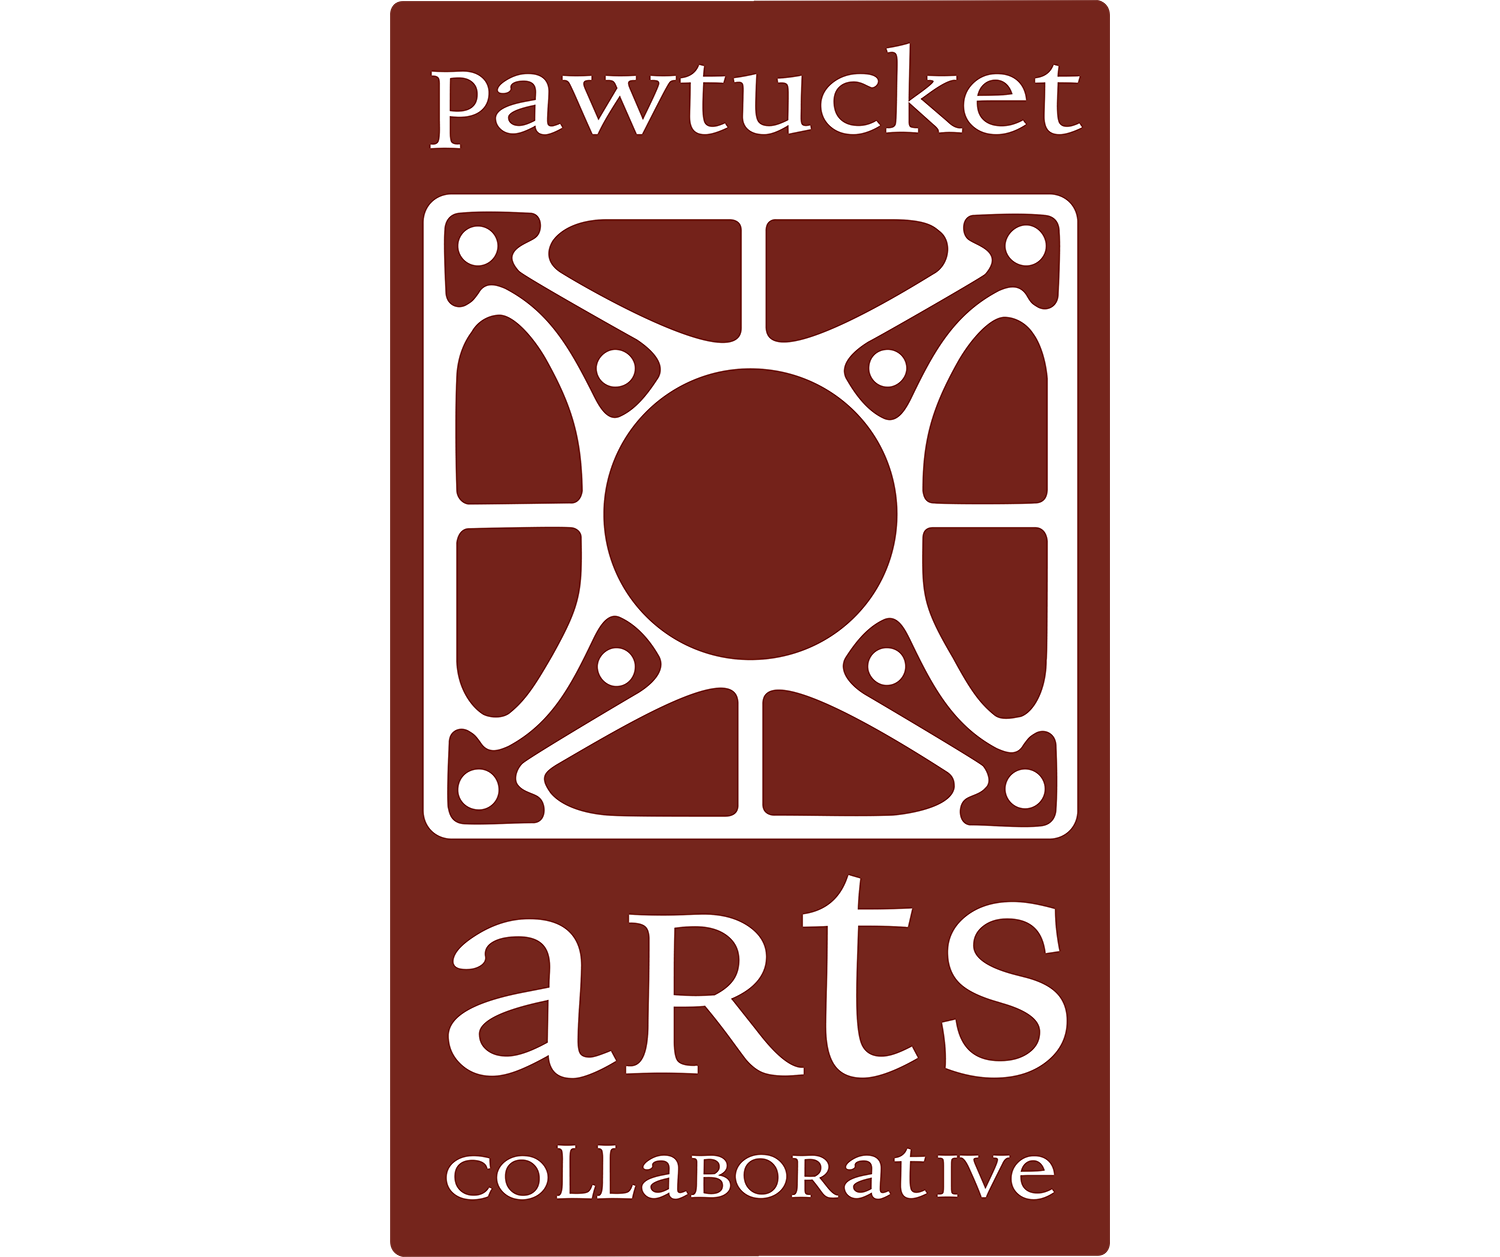 The Under $200 Holiday Show with Silent Auction - The Pawtucket Arts Collaborative will be hosting their winter fundraiser. 60+ member artists exhibit their works in all sizes and mediums priced $200 and under. The silent auction of all works will take place on November 15th from 5:30 - 7pm at the PAC Gallery. Any remaining art pieces will be on display and for sale during the Craft and Kitsch Winter Market.